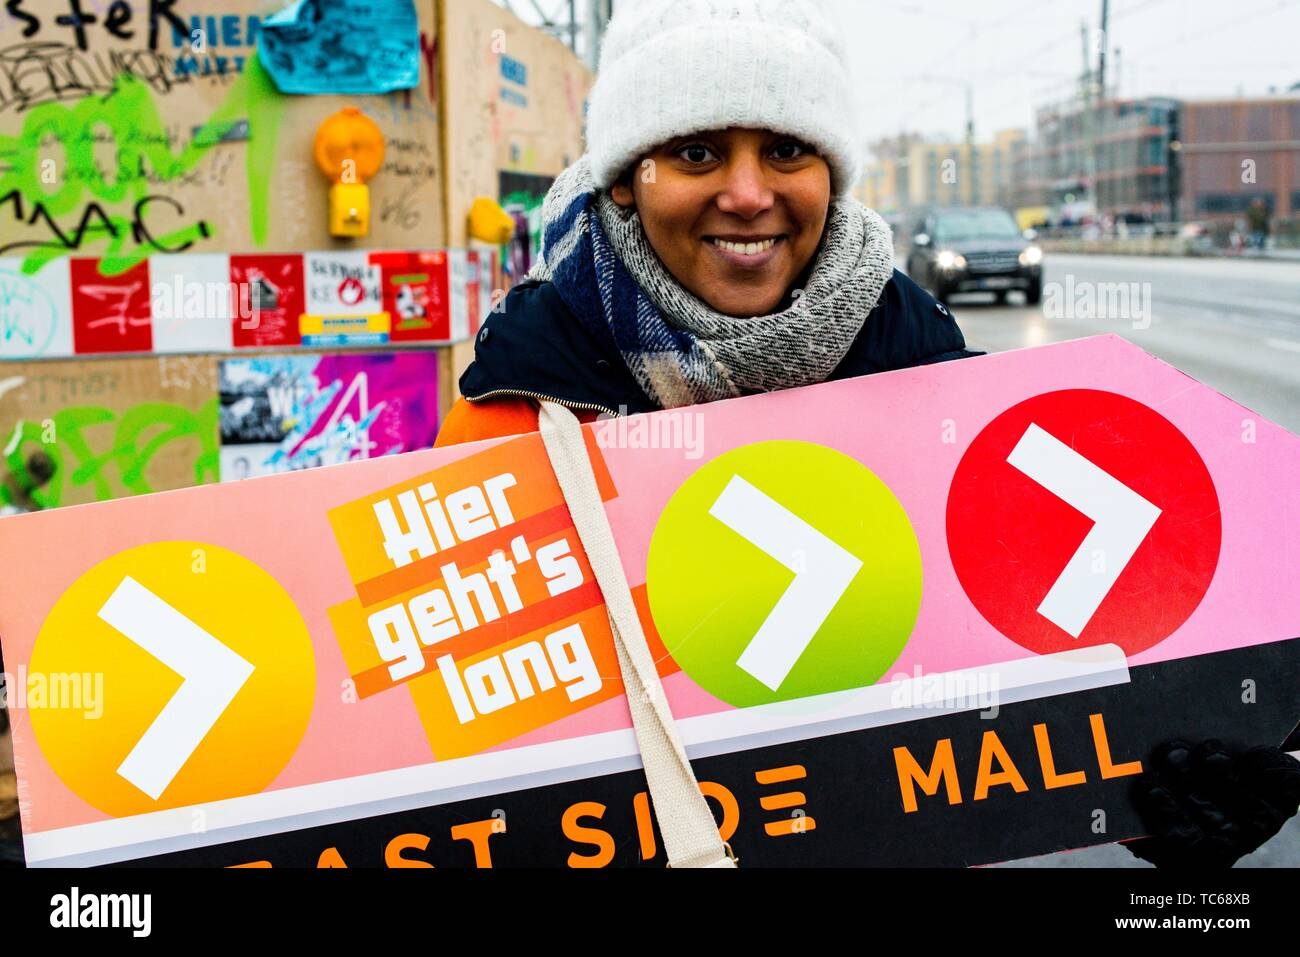 Berlin, Germany. Young Girl attracting attention to East Side Mall shopping center, by standing outside in cold and rainy weather holding a sign, - Stock Image